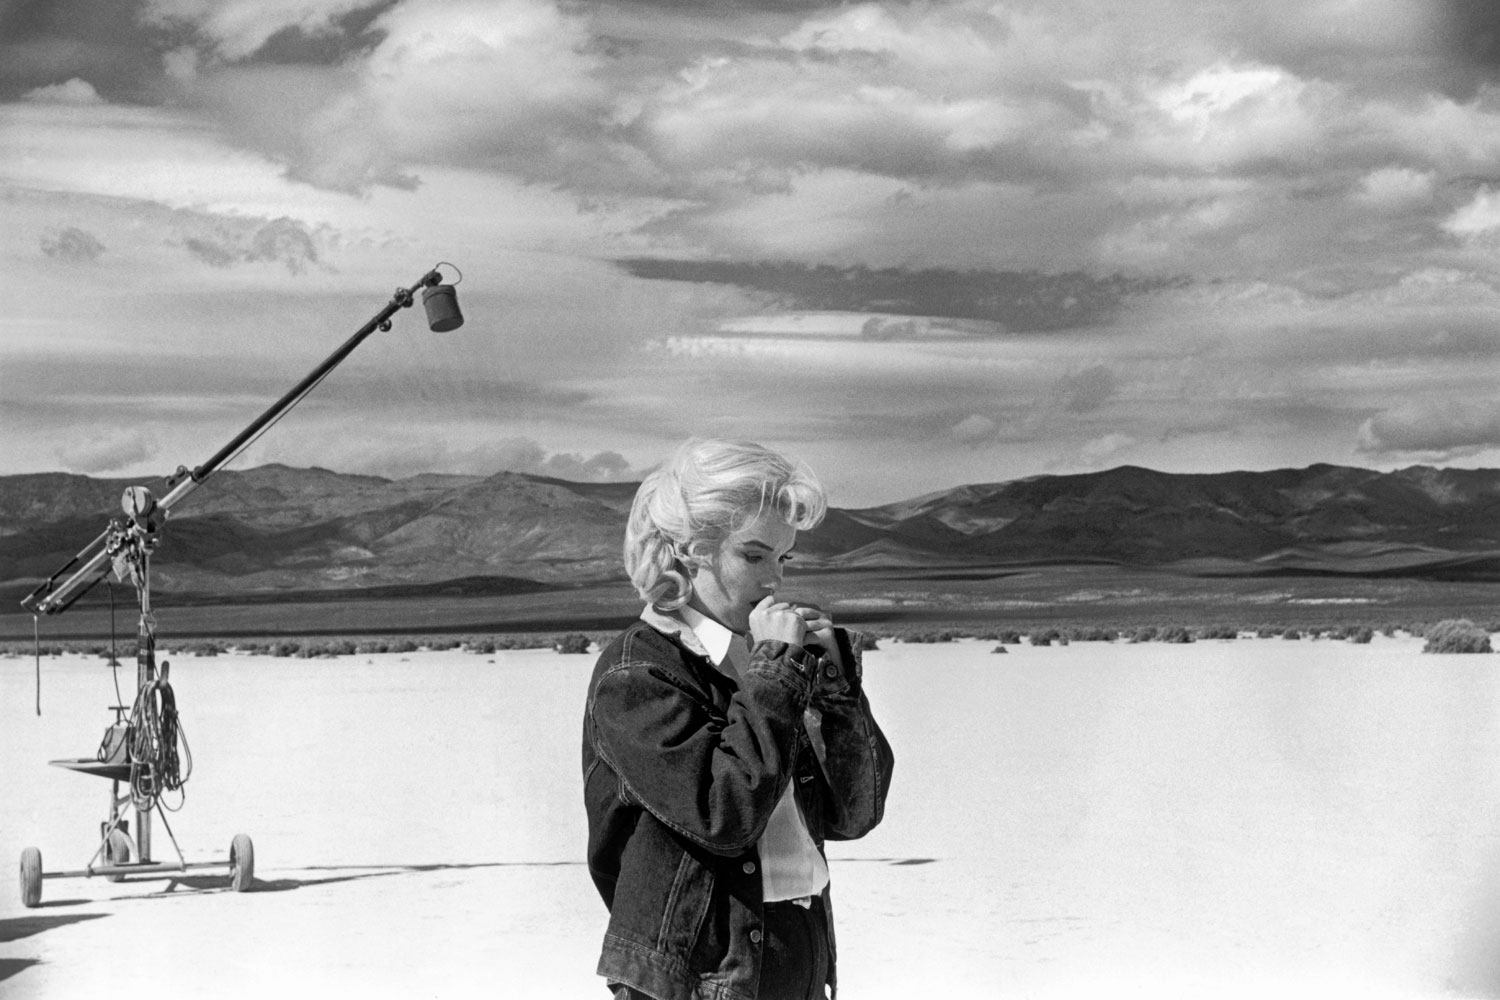 Marilyn Monroe in the Nevada desert going over her lines for a difficult scene she is about to play with Clarke Gable in the film  The Misfits  by John Huston. 1960.